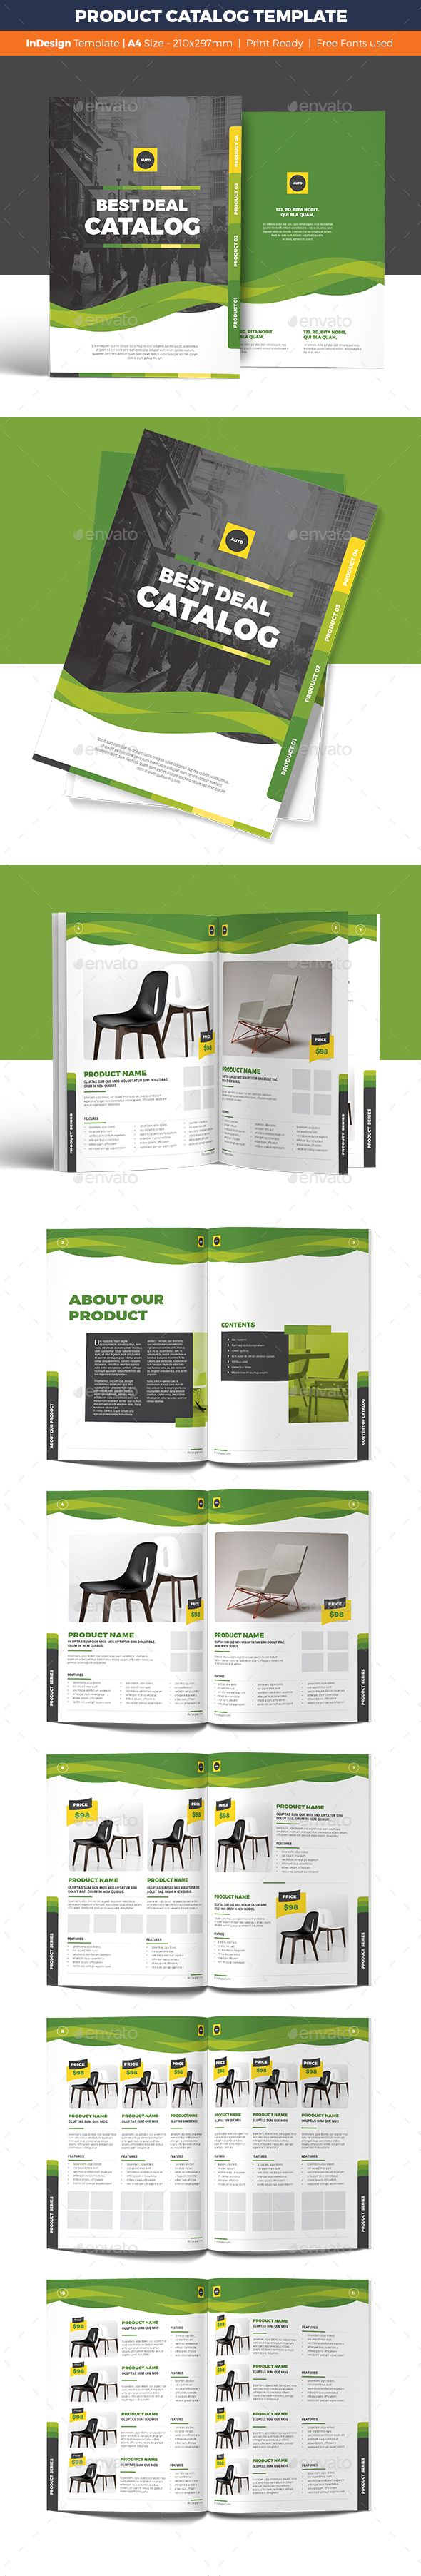 Product Catalog Template InDesign INDD. Download here: http://graphicriver.net/item/product-catalog-template/16724891?ref=ksioks